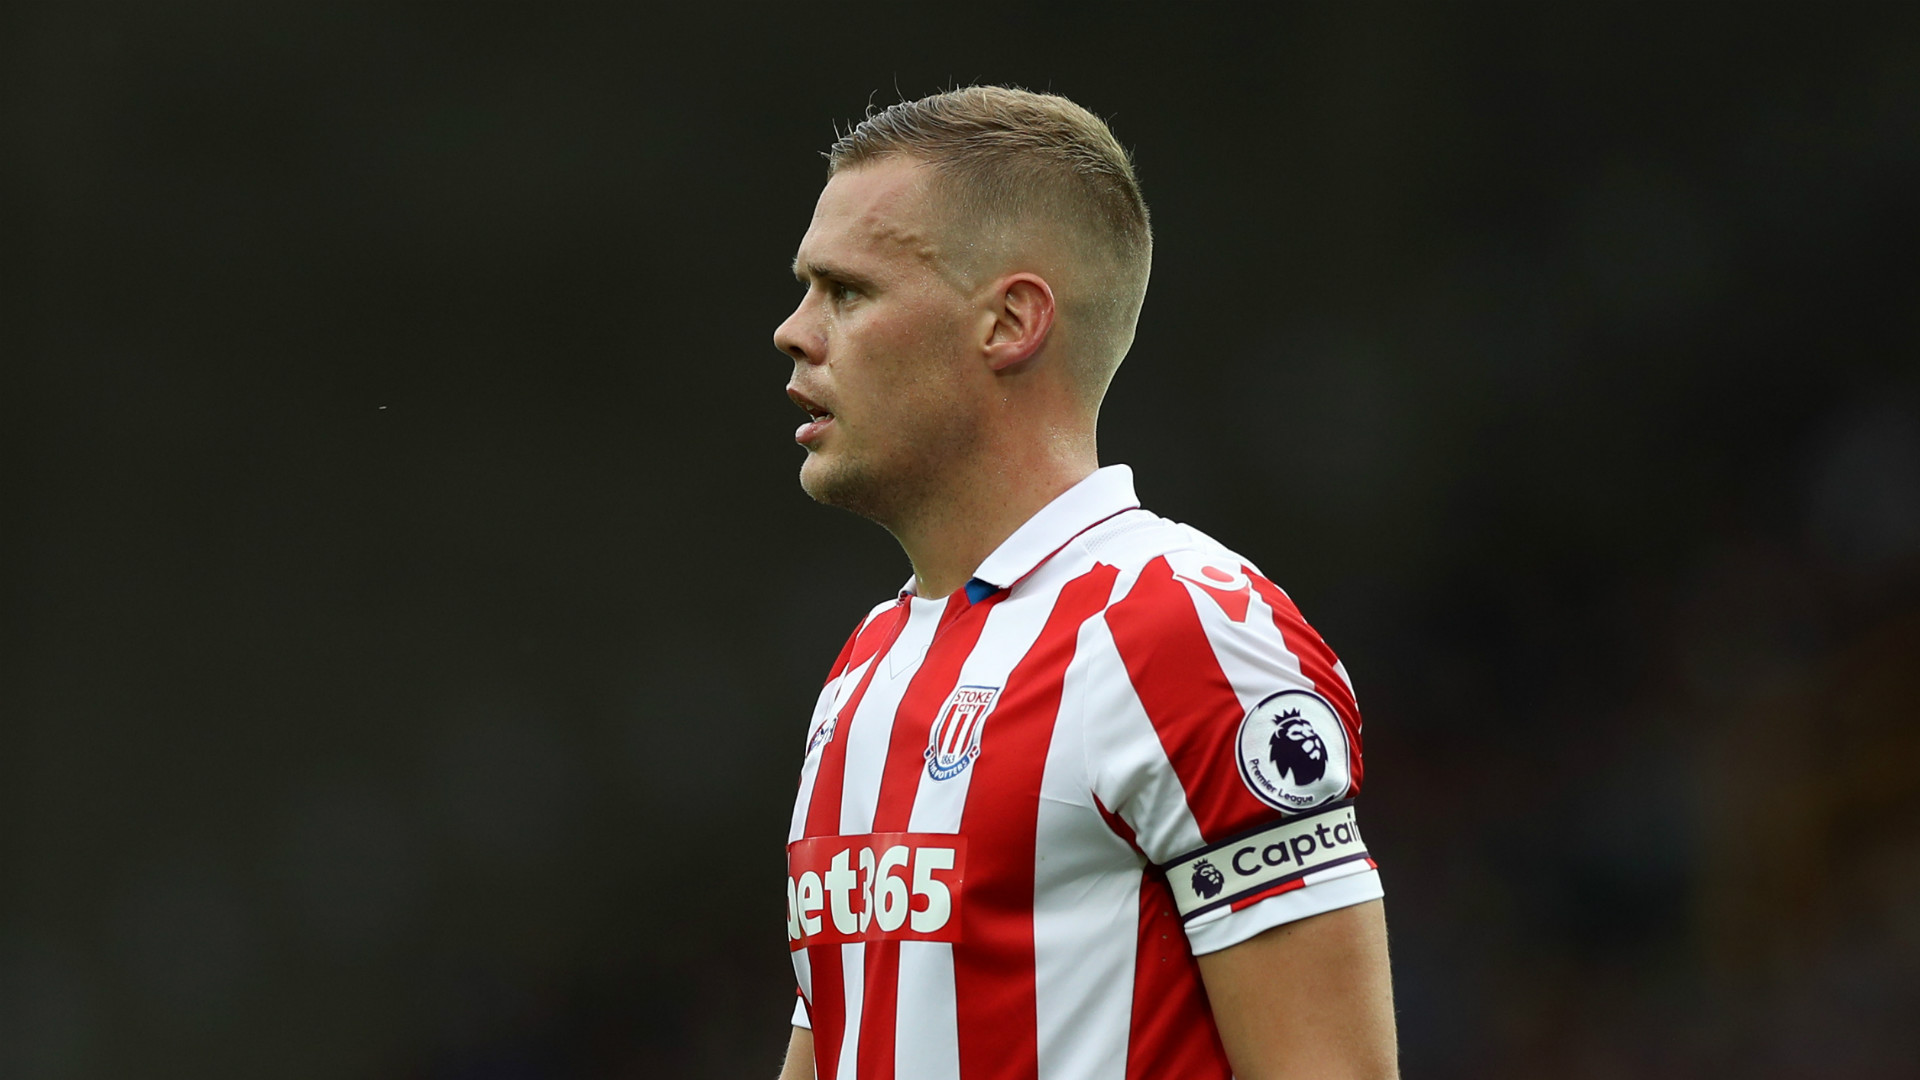 Ryan Shawcross HD